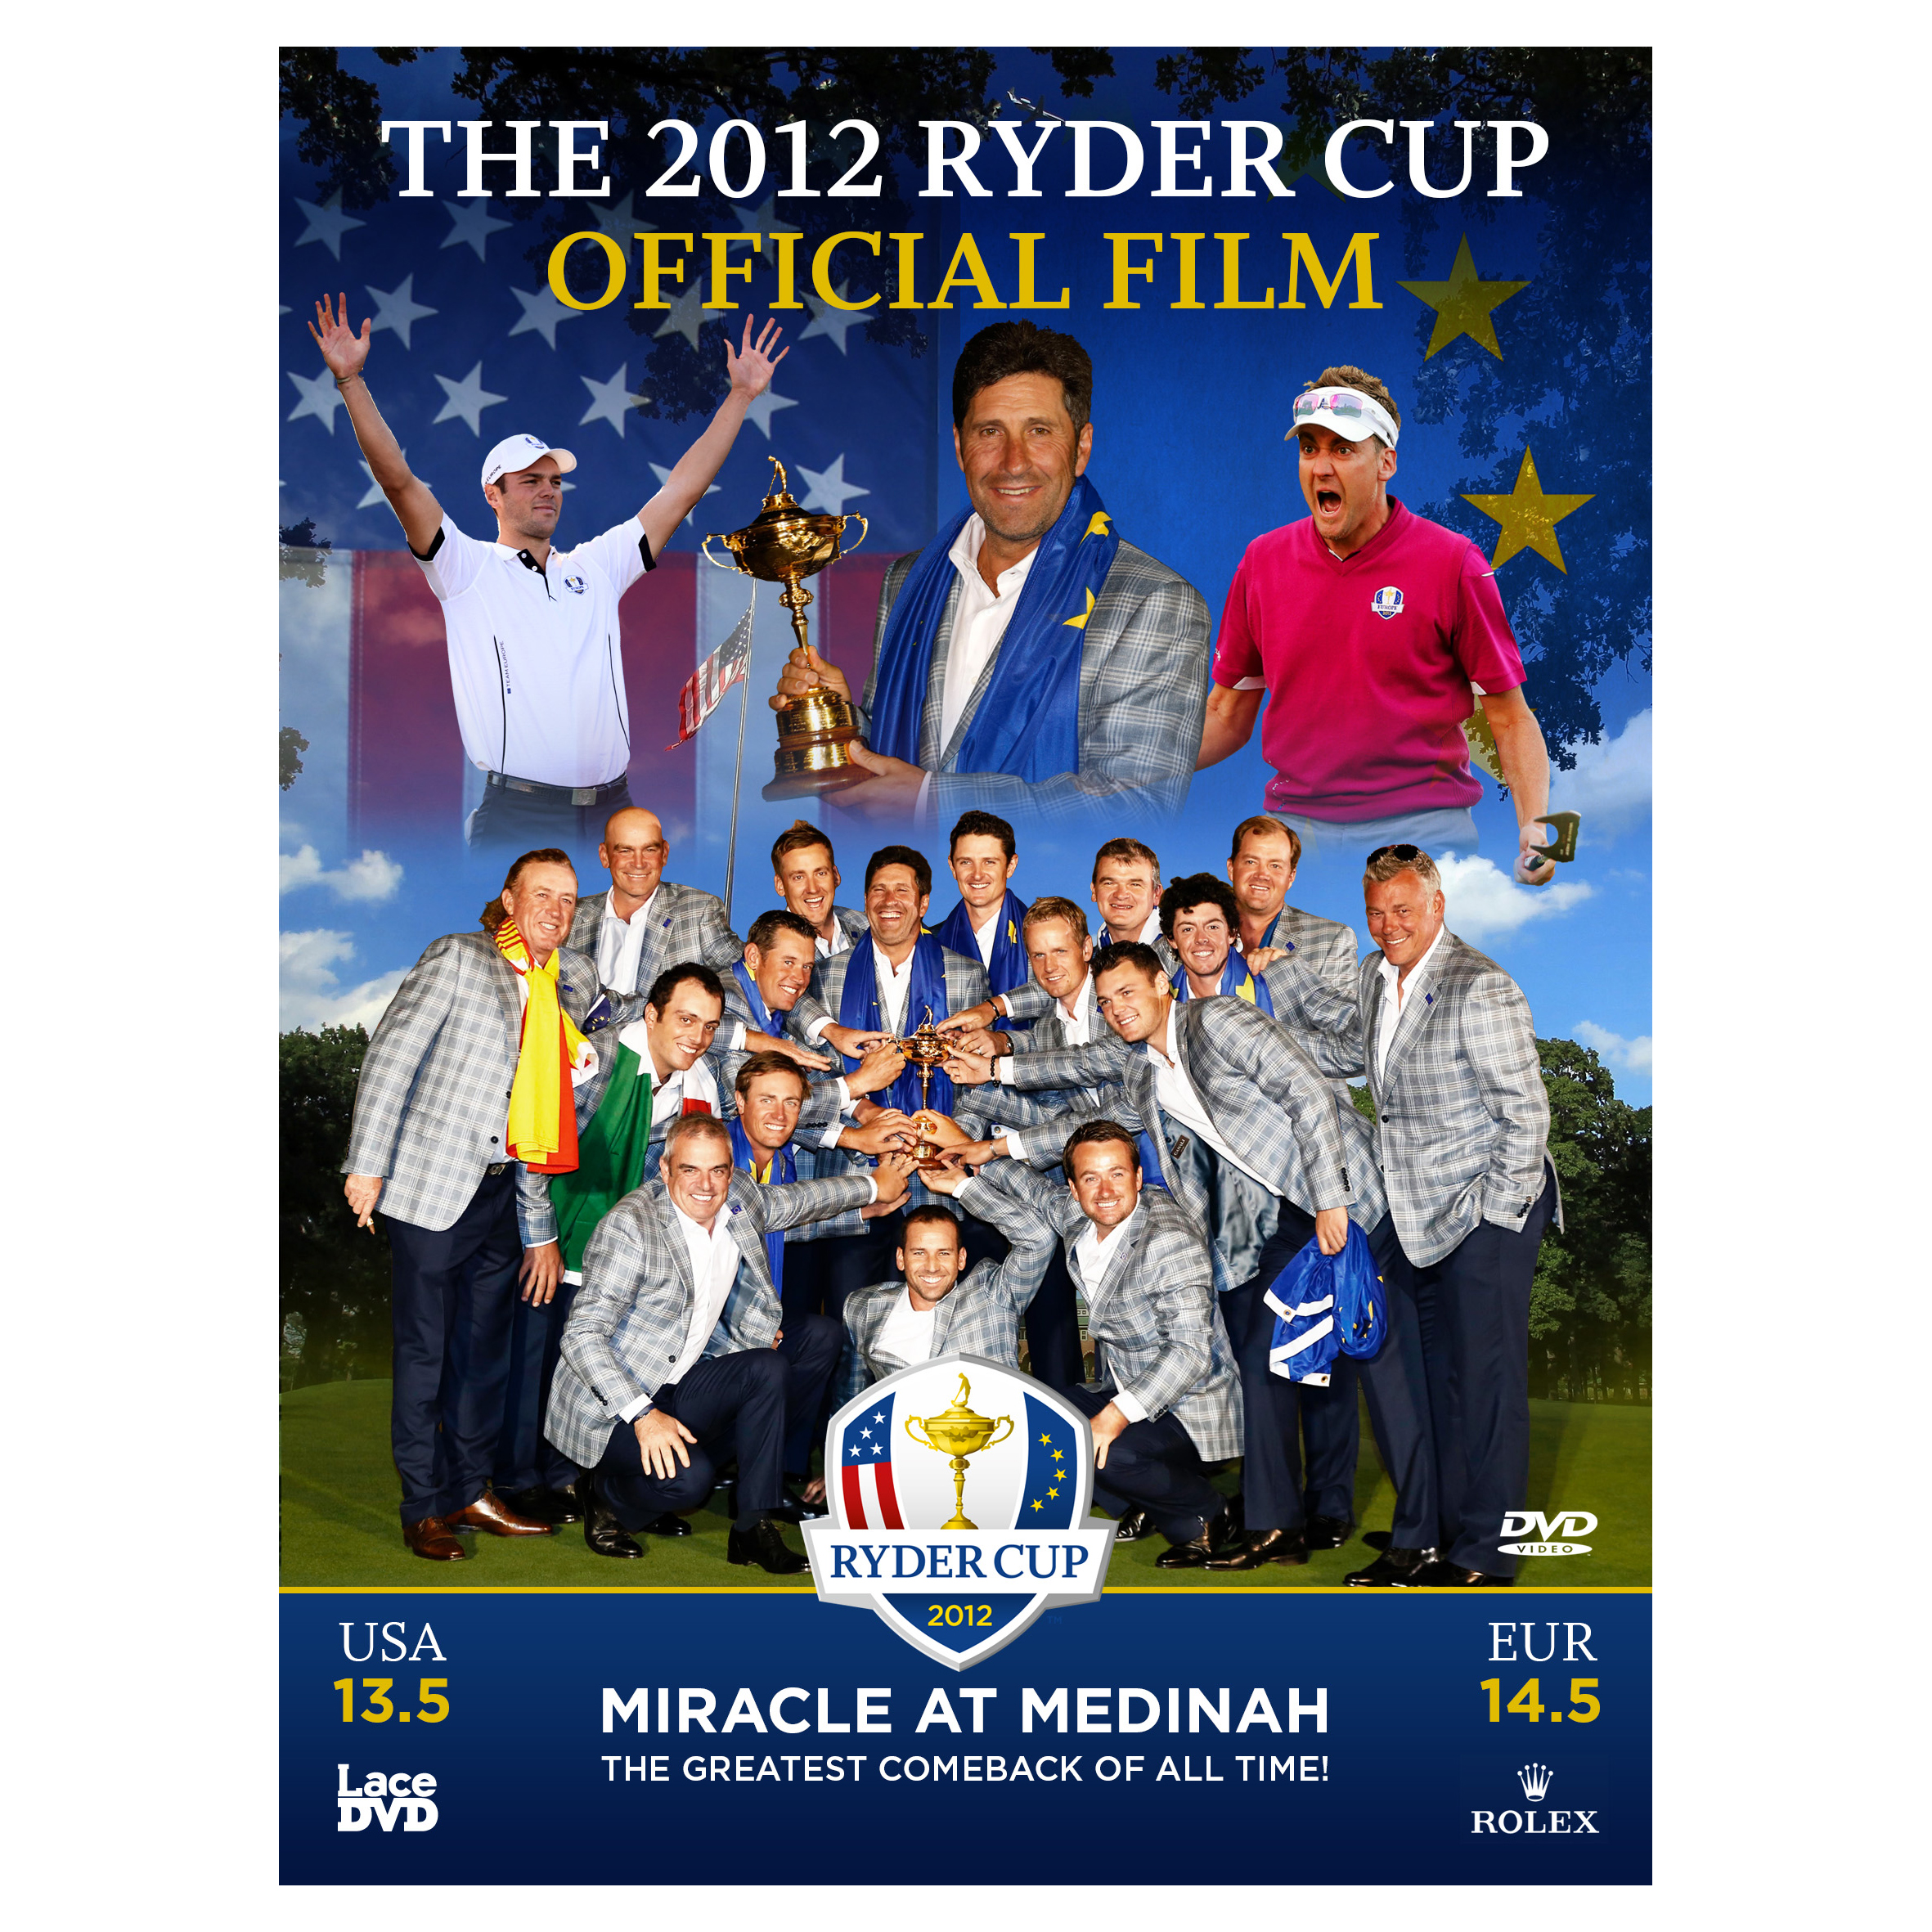 The Ryder Cup The 2012 Medinah Official Film (39th) DVD